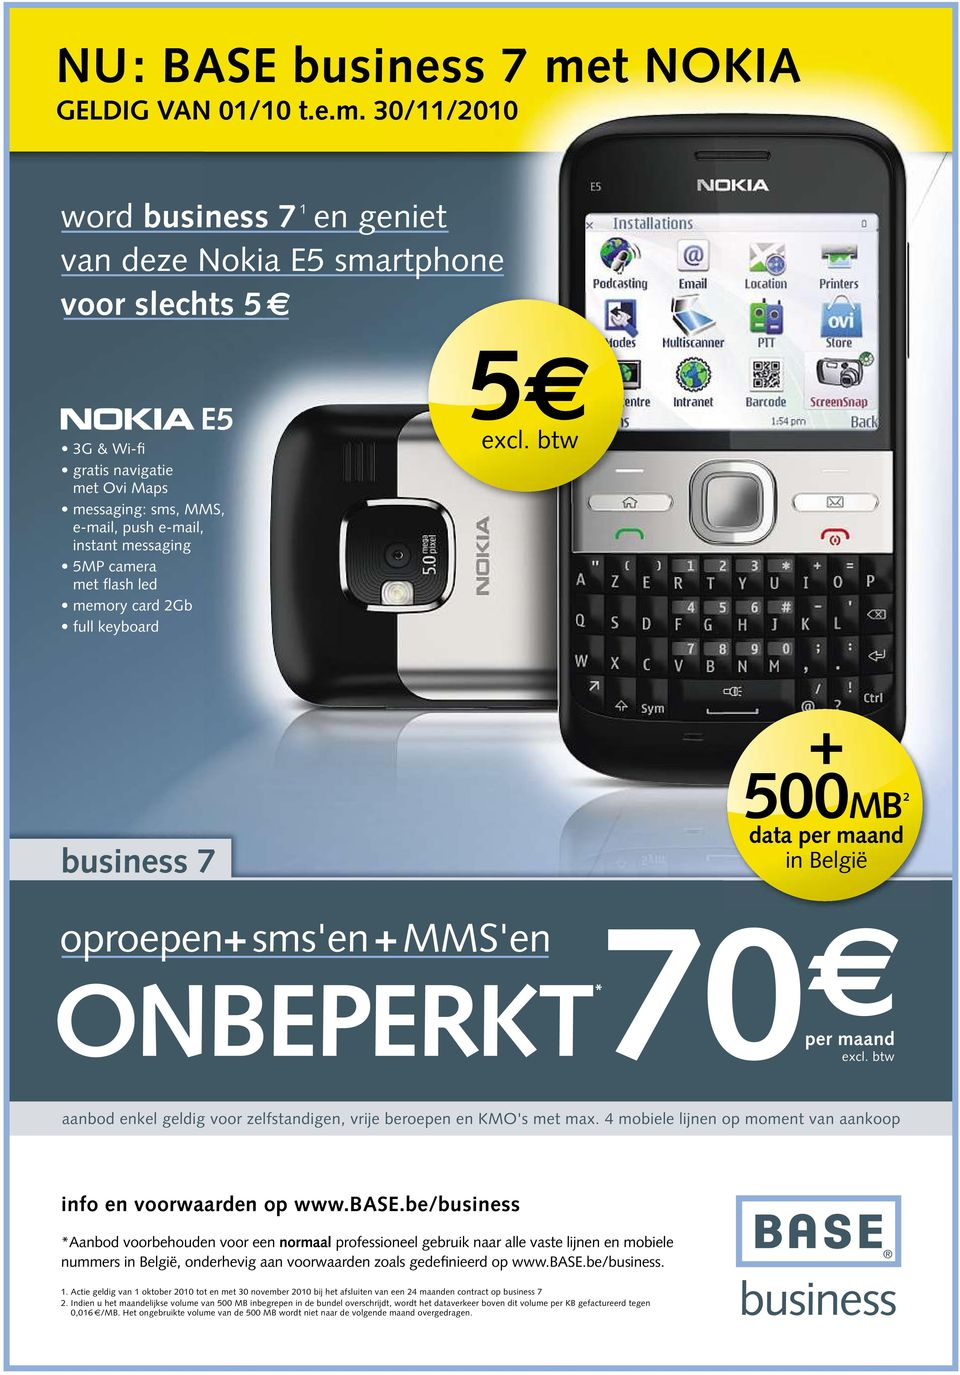 30/11/2010 word business 7 1 en geniet van deze Nokia E5 smartphone voor slechts 5 E5 3G&Wi-fi gratis navigatie met Ovi Maps messaging: sms, MMS, e-mail, push e-mail, instant messaging 5MP camera met